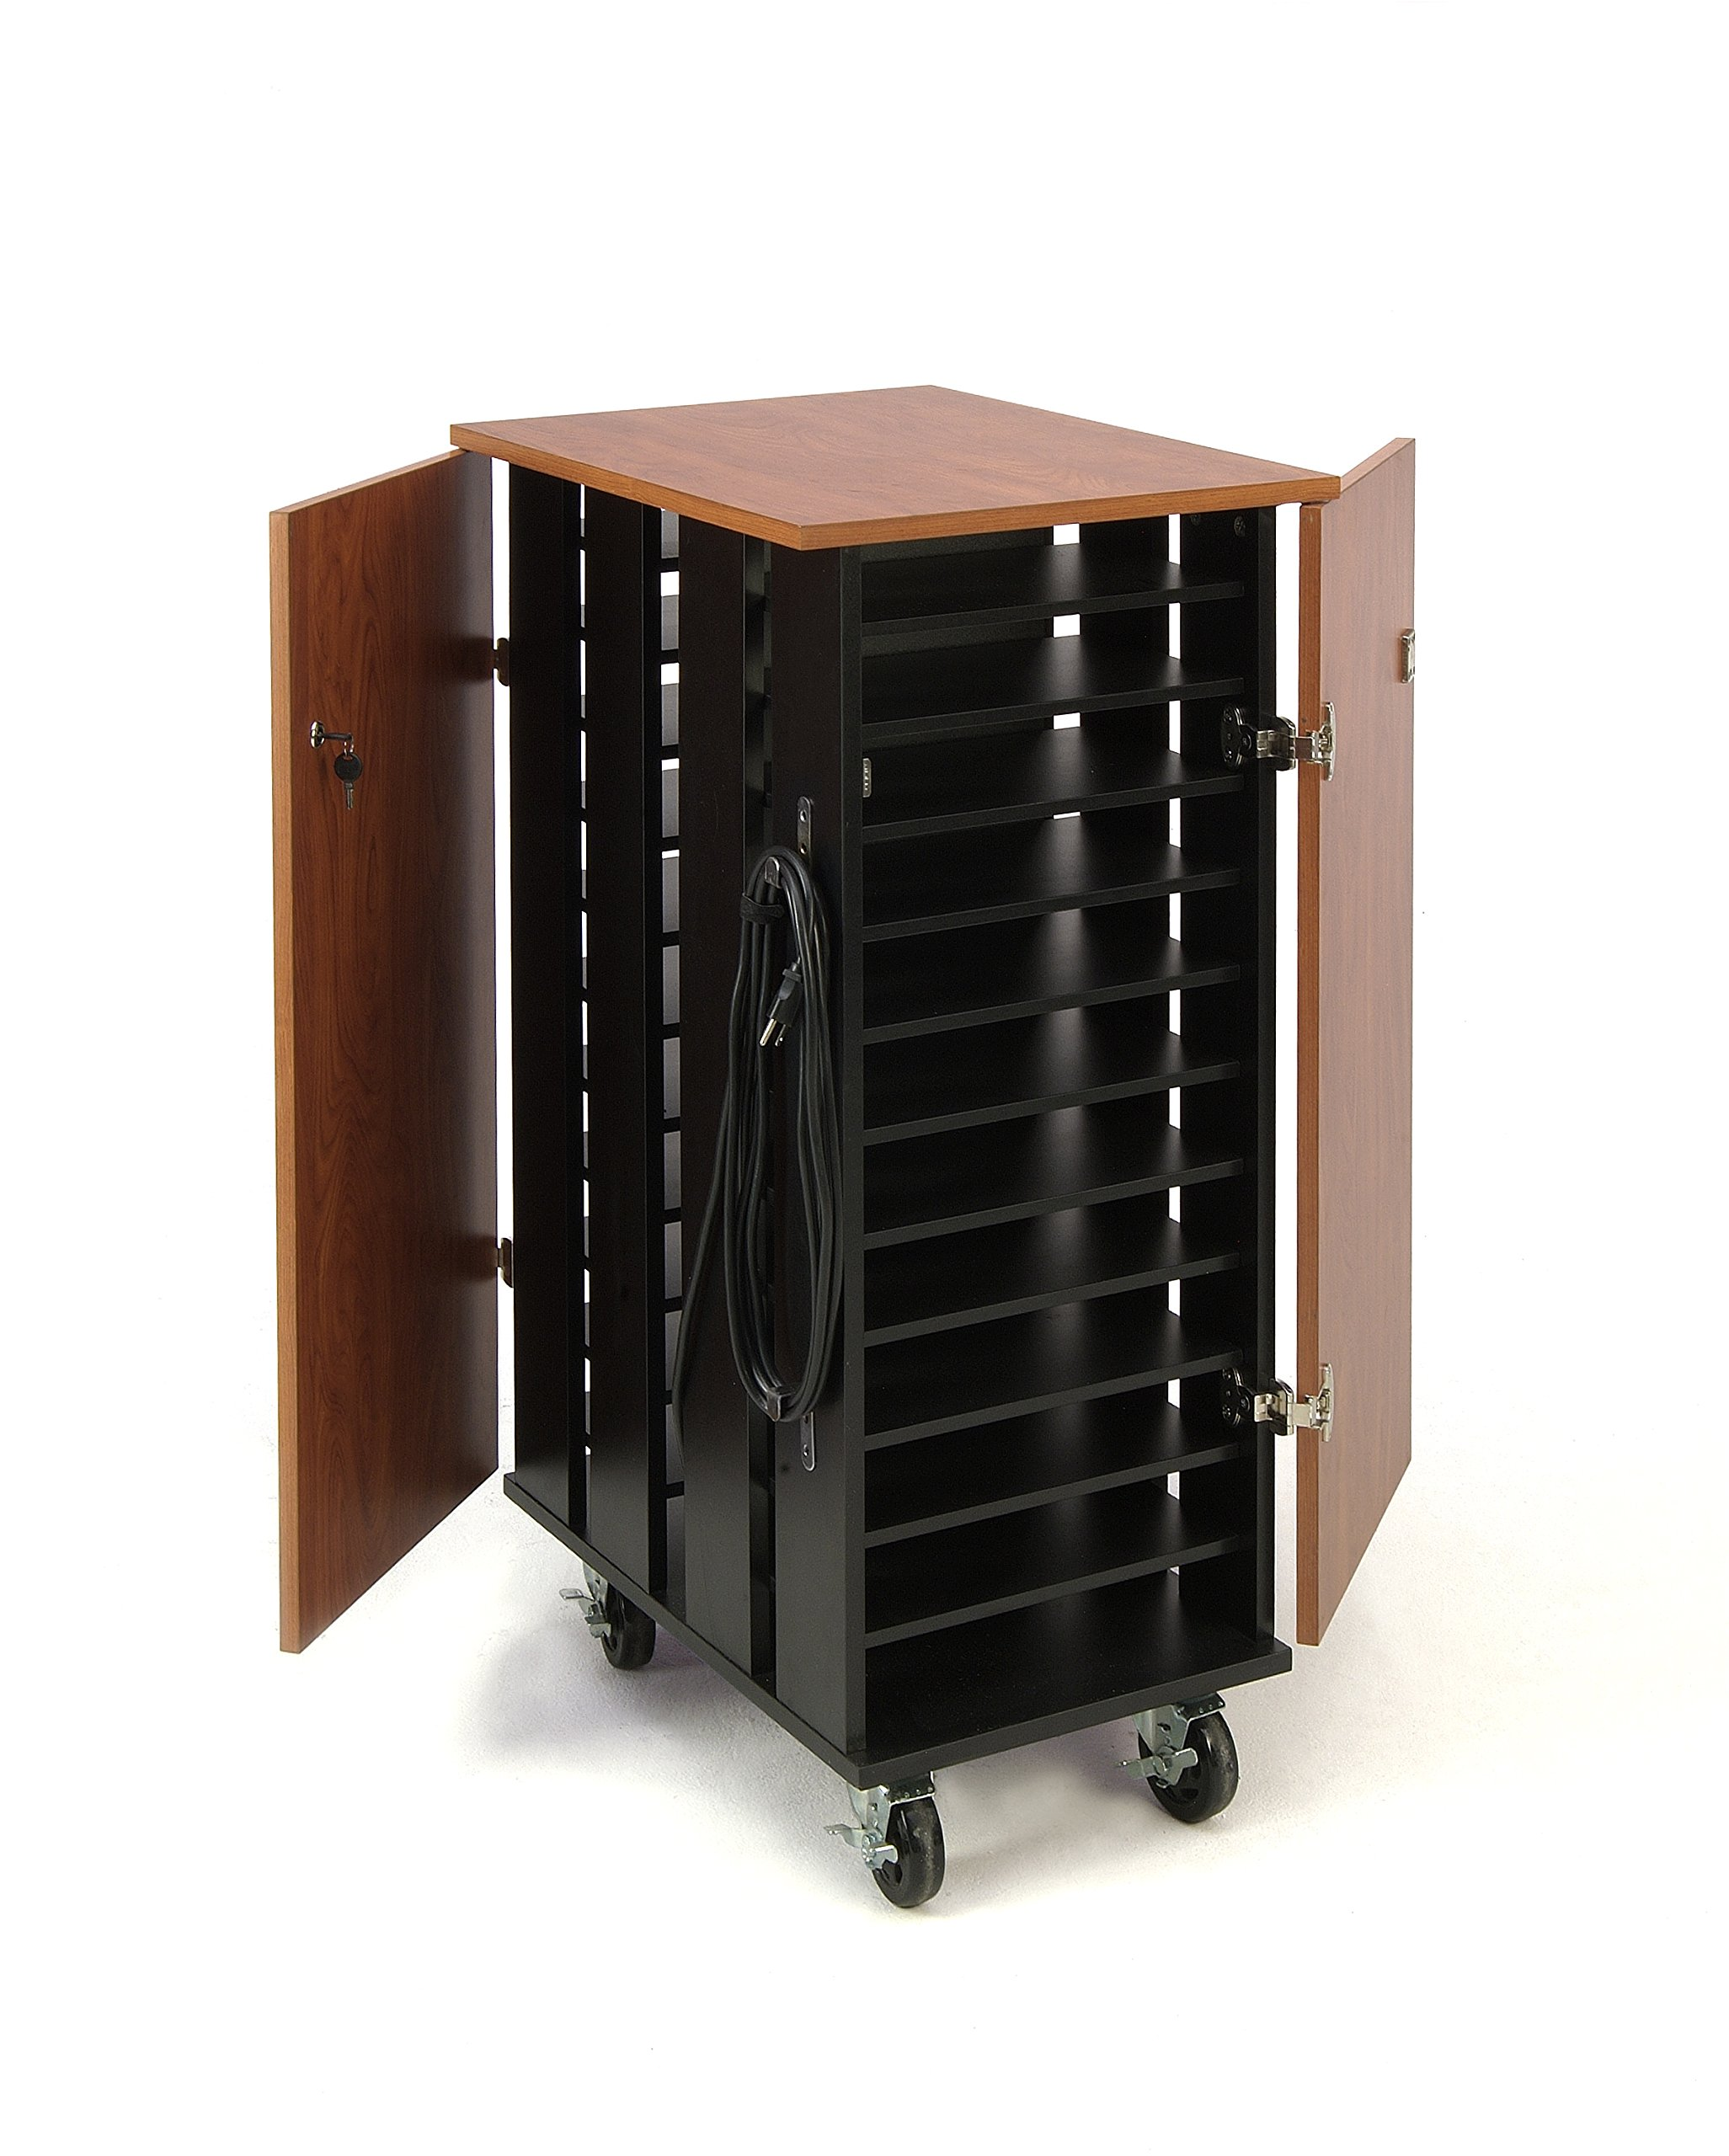 Oklahoma Sound TCSC Tablet Charging and Storage Cart, 26'' Length x 20'' Width x 43-1/4'' Height, Wild Cherry/Black